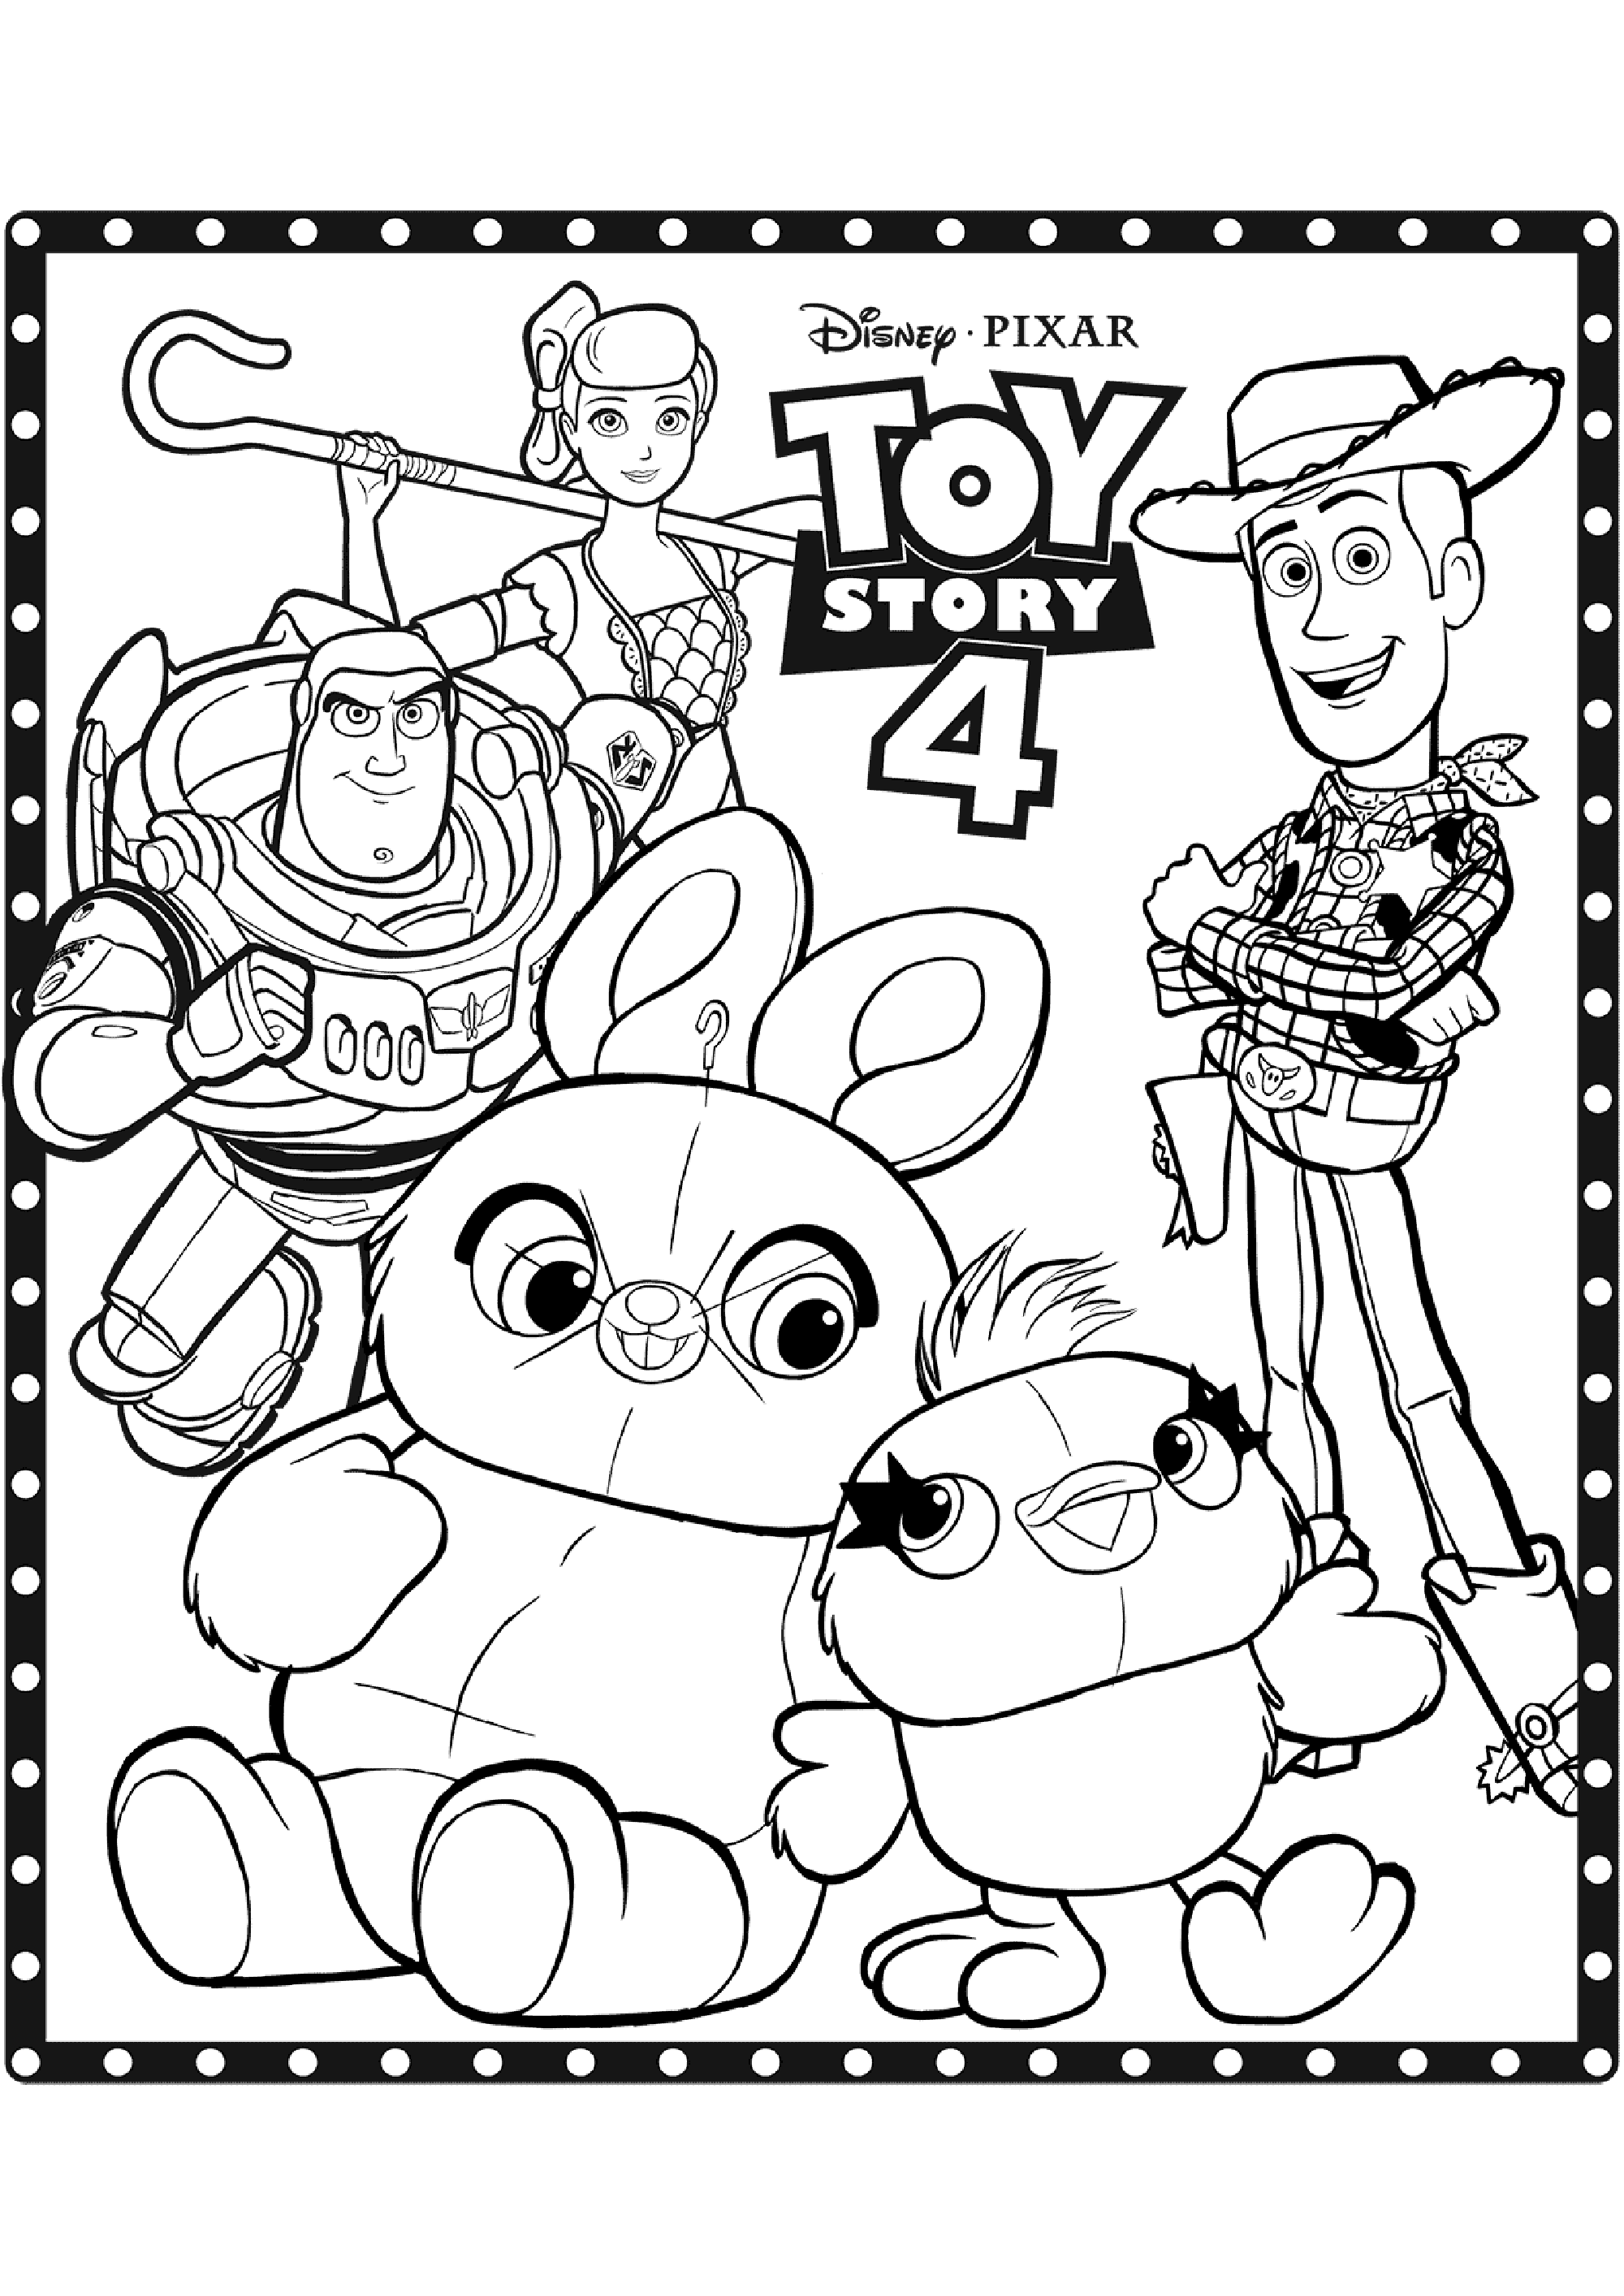 coloring pages disney toy story 44 best images about toy story colouring pictures on pinterest coloring pages story disney toy